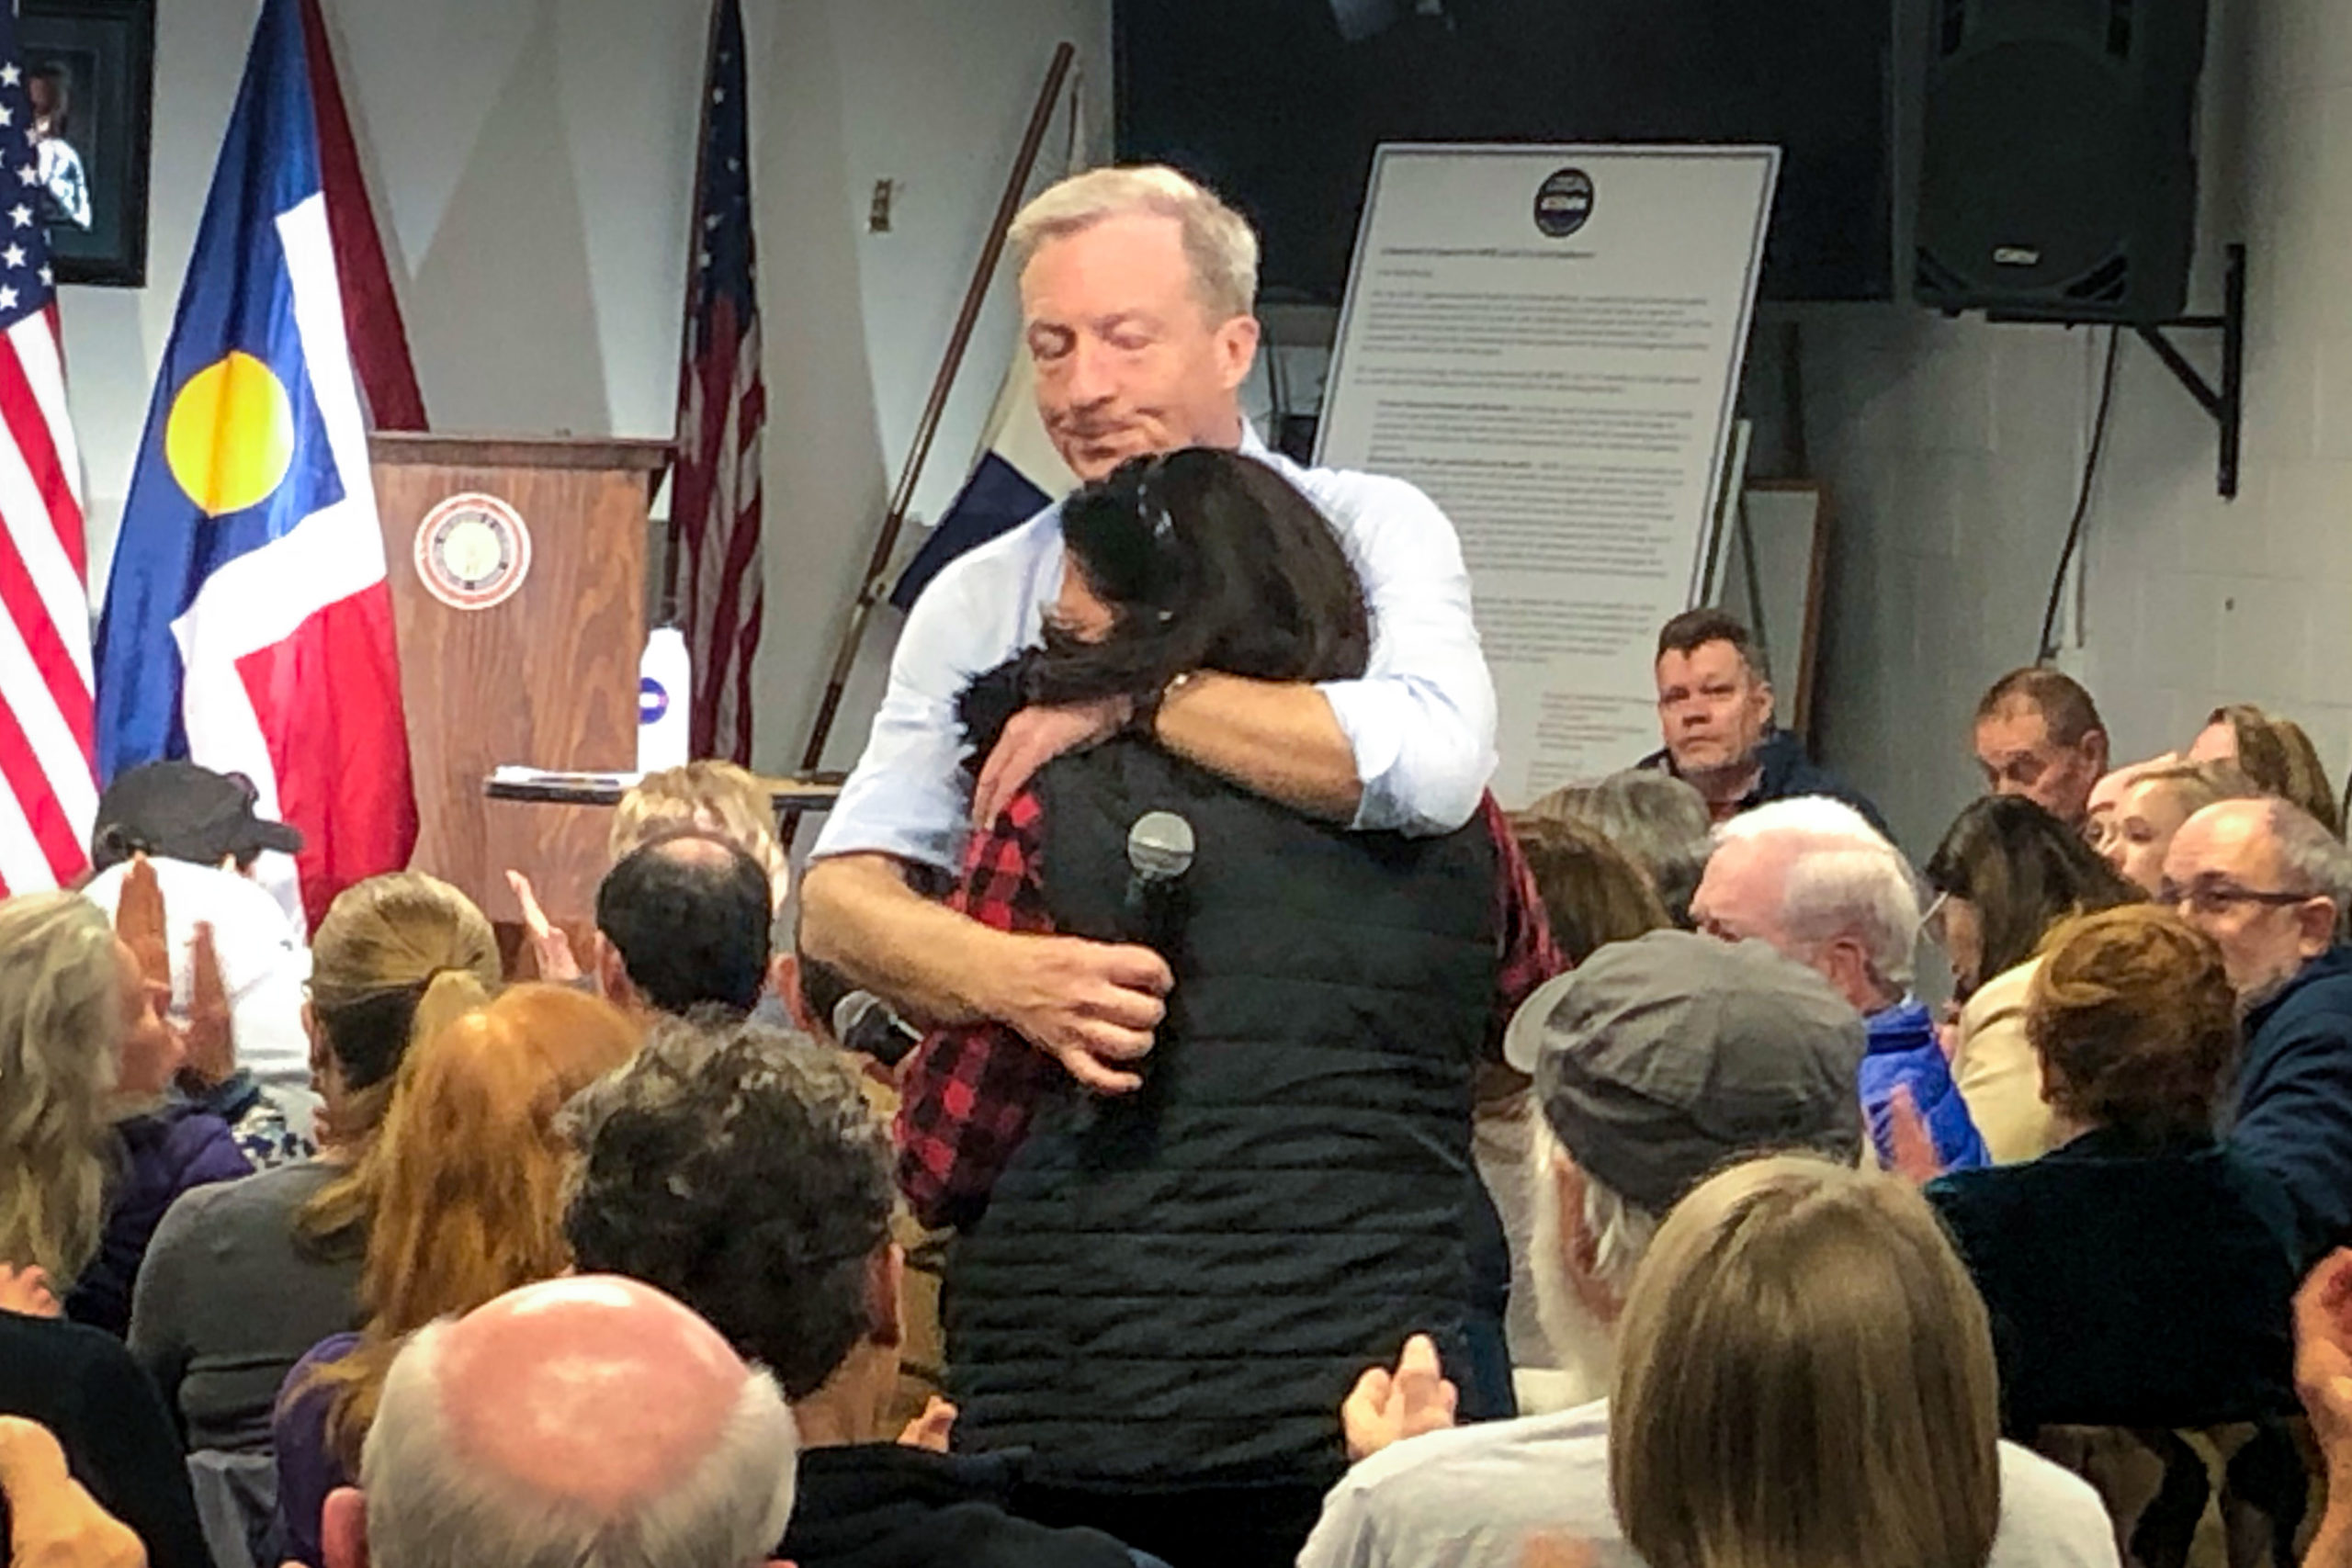 Democratic Presidential candidate Tom Steyer consoles Elizabeth Emerson of Castle Rock at a Denver town hall on Sunday, Dec. 29. Emerson's son Jacob was killed in a 2018 shooting.